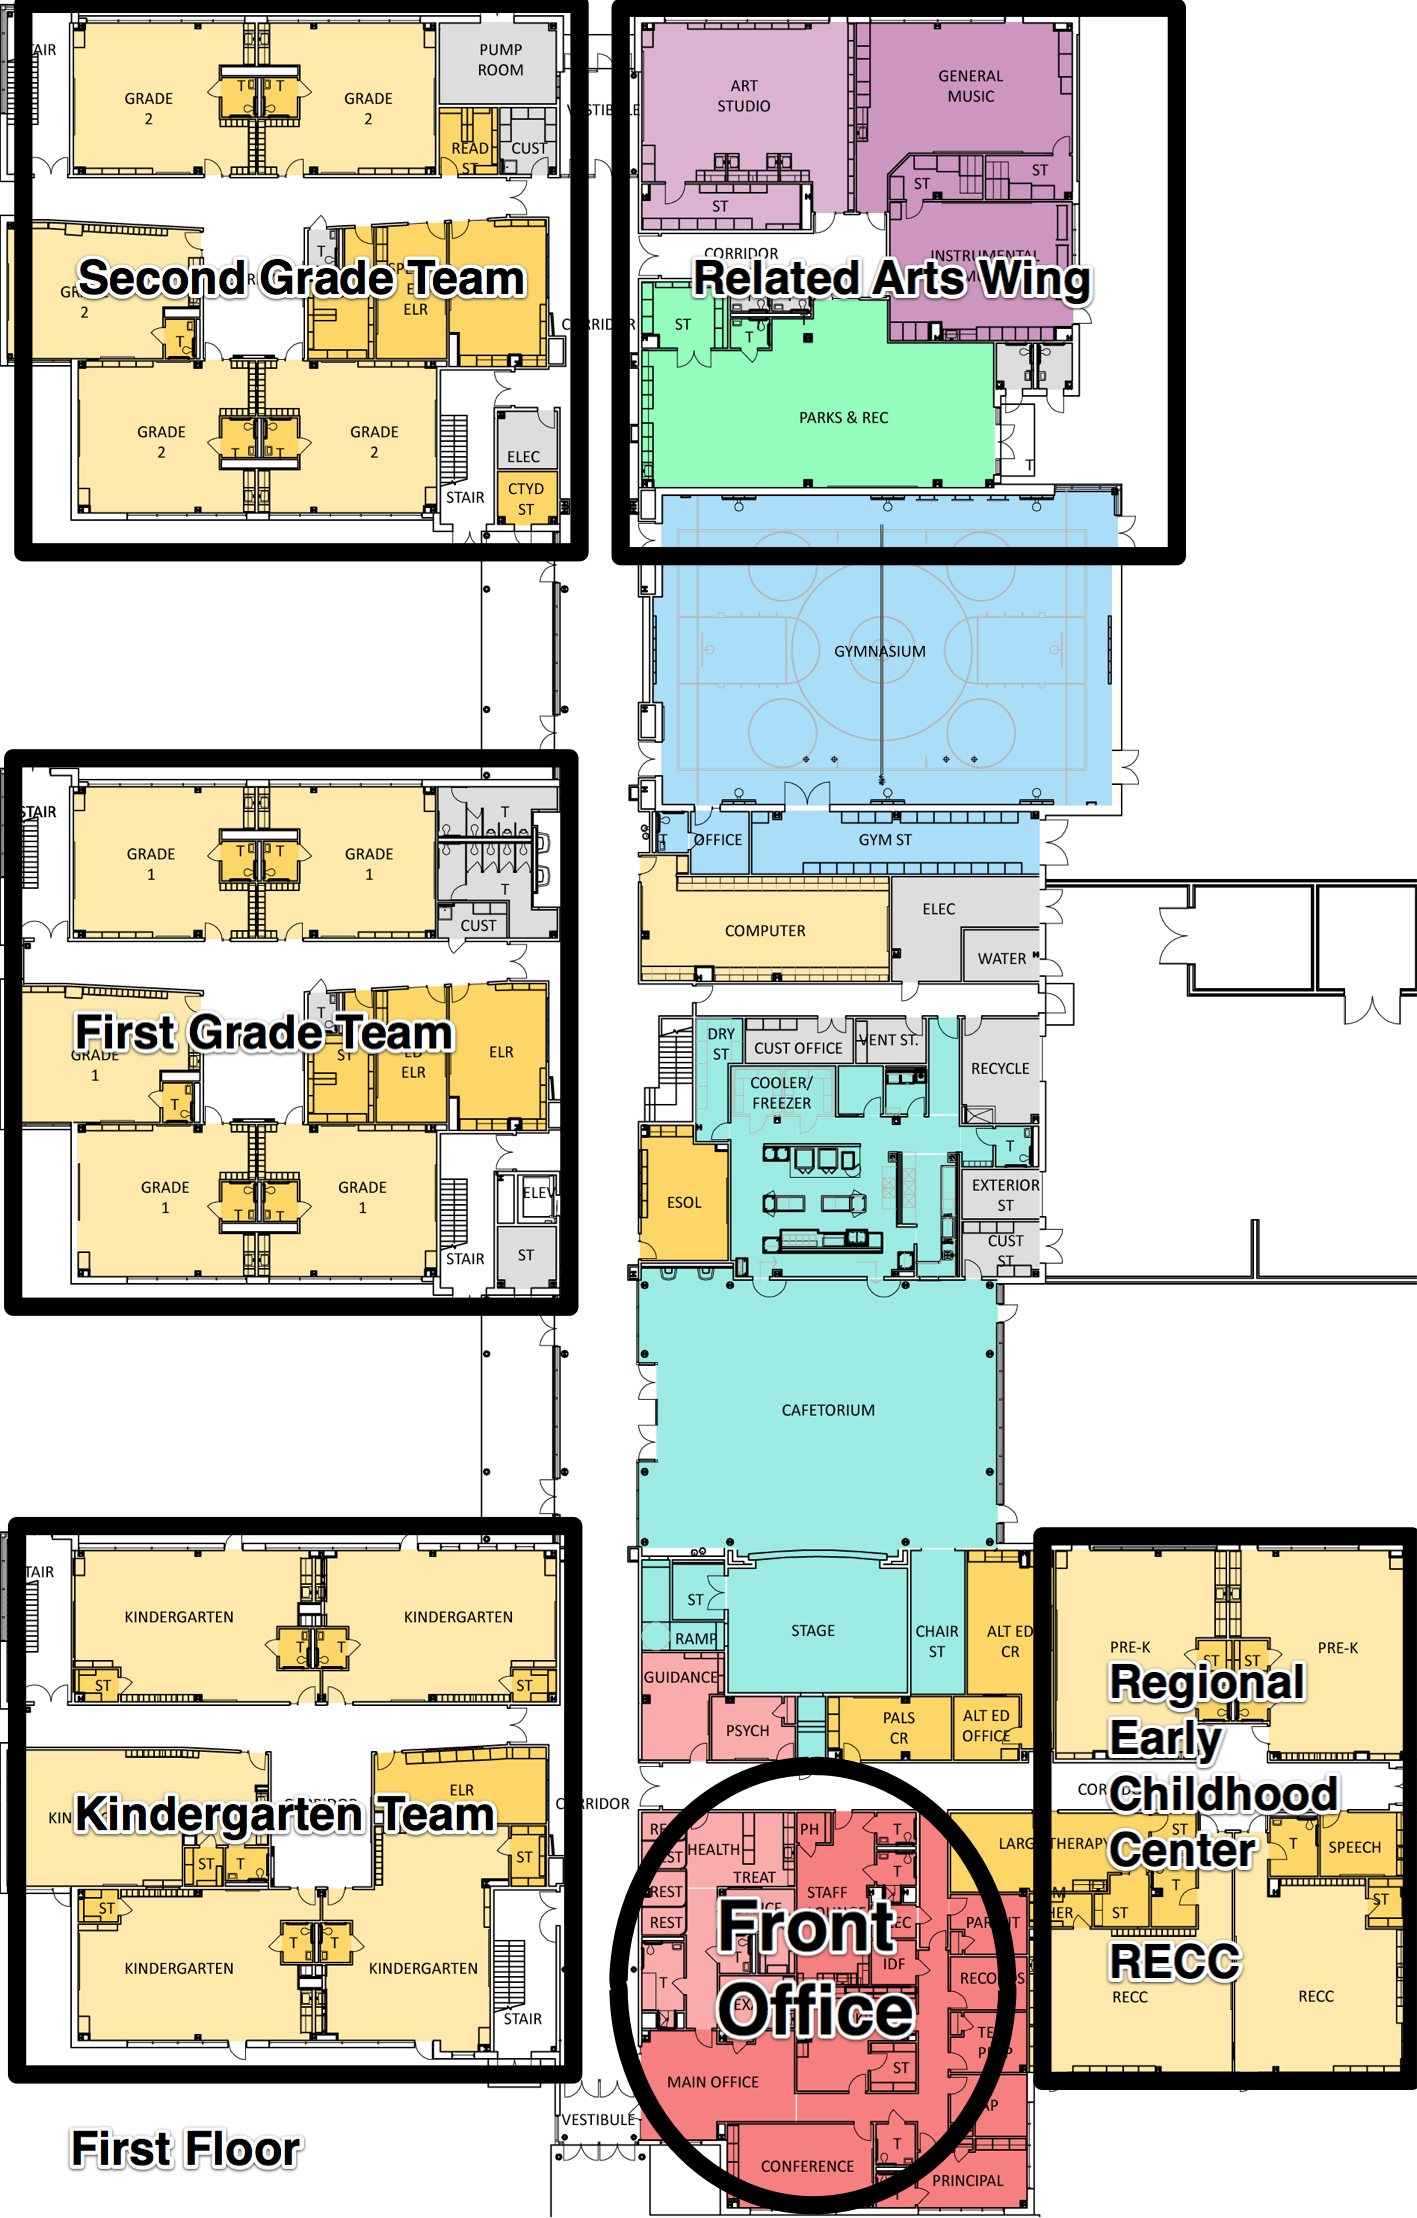 dles first floor map of school